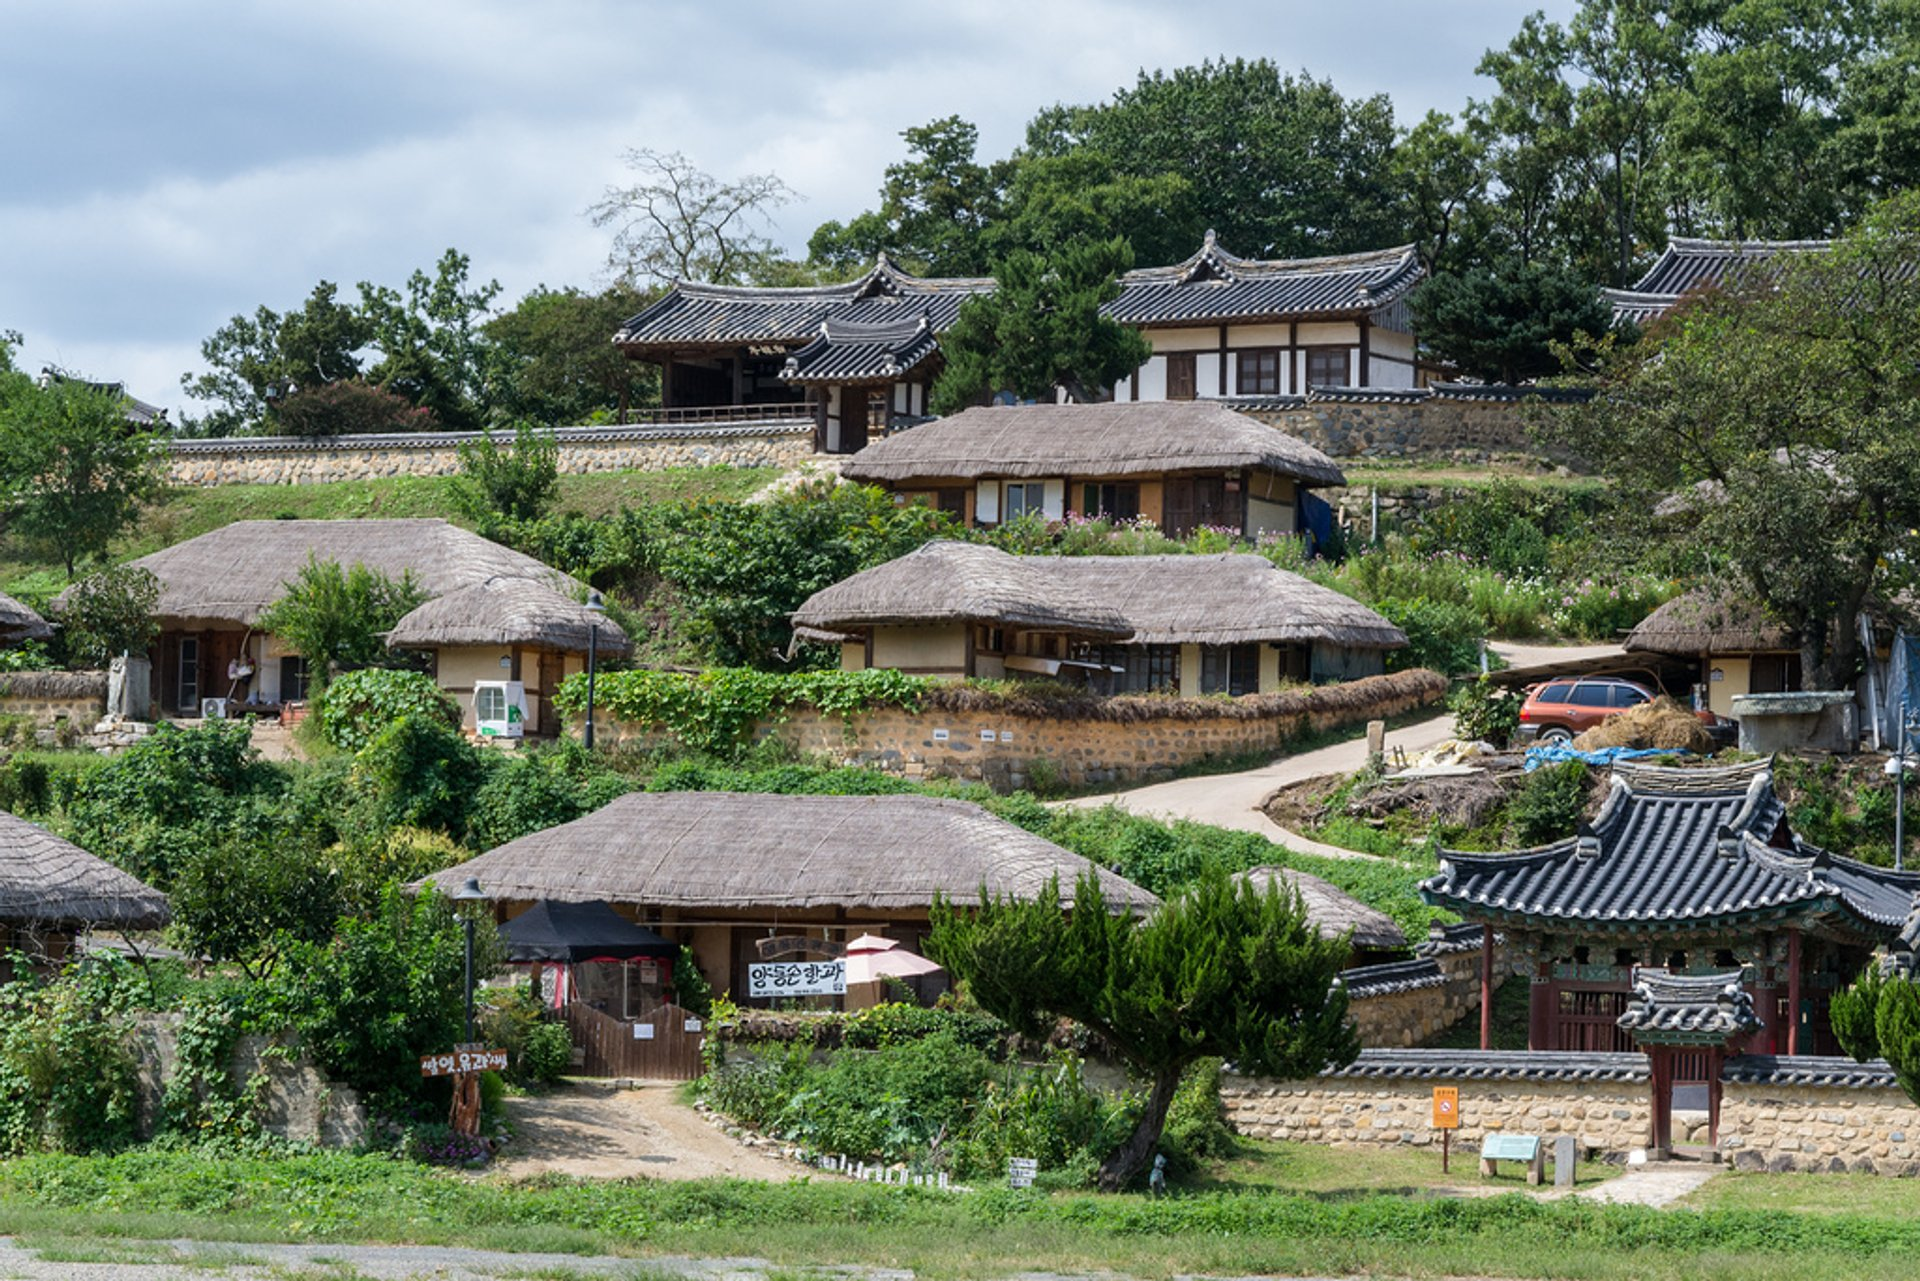 Yangdong Folk Village, Gyeongju, South Korea 2020